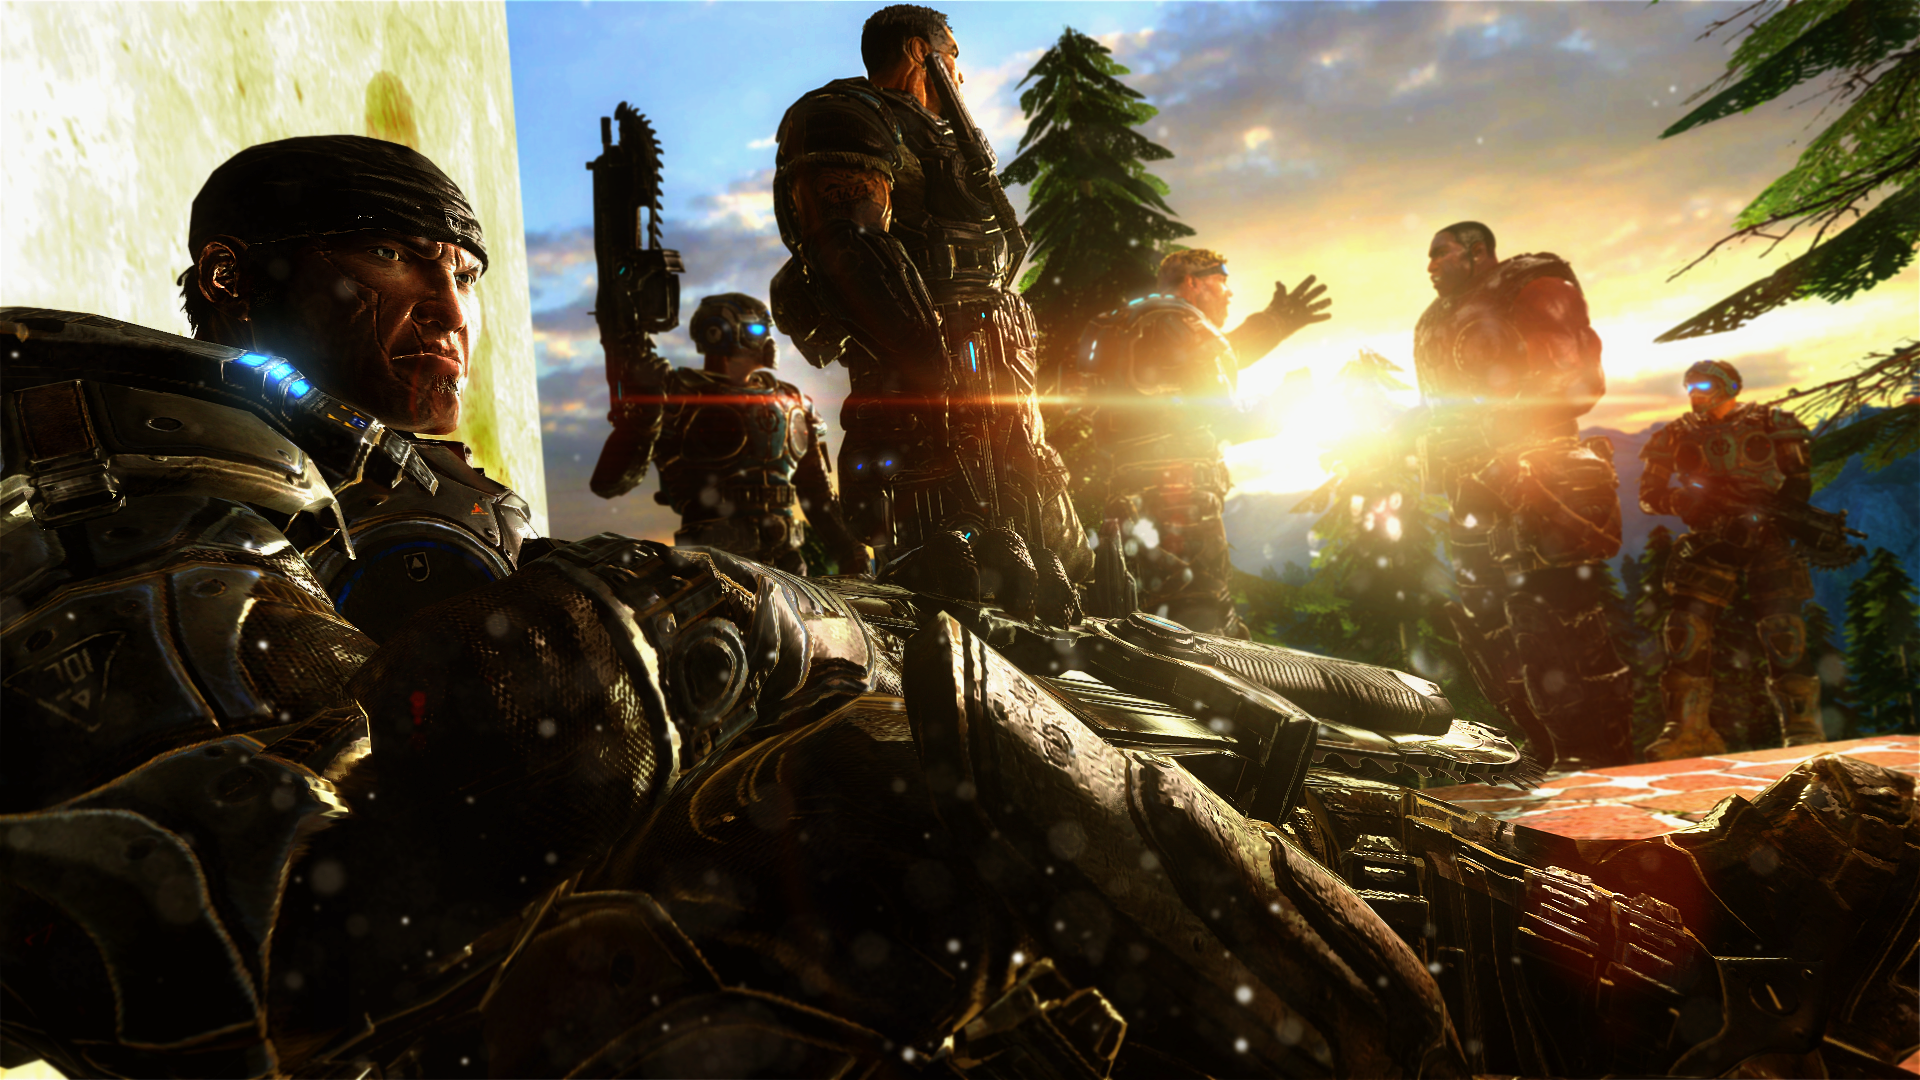 Archived  Gears Of War On EpicGamers DeviantArt